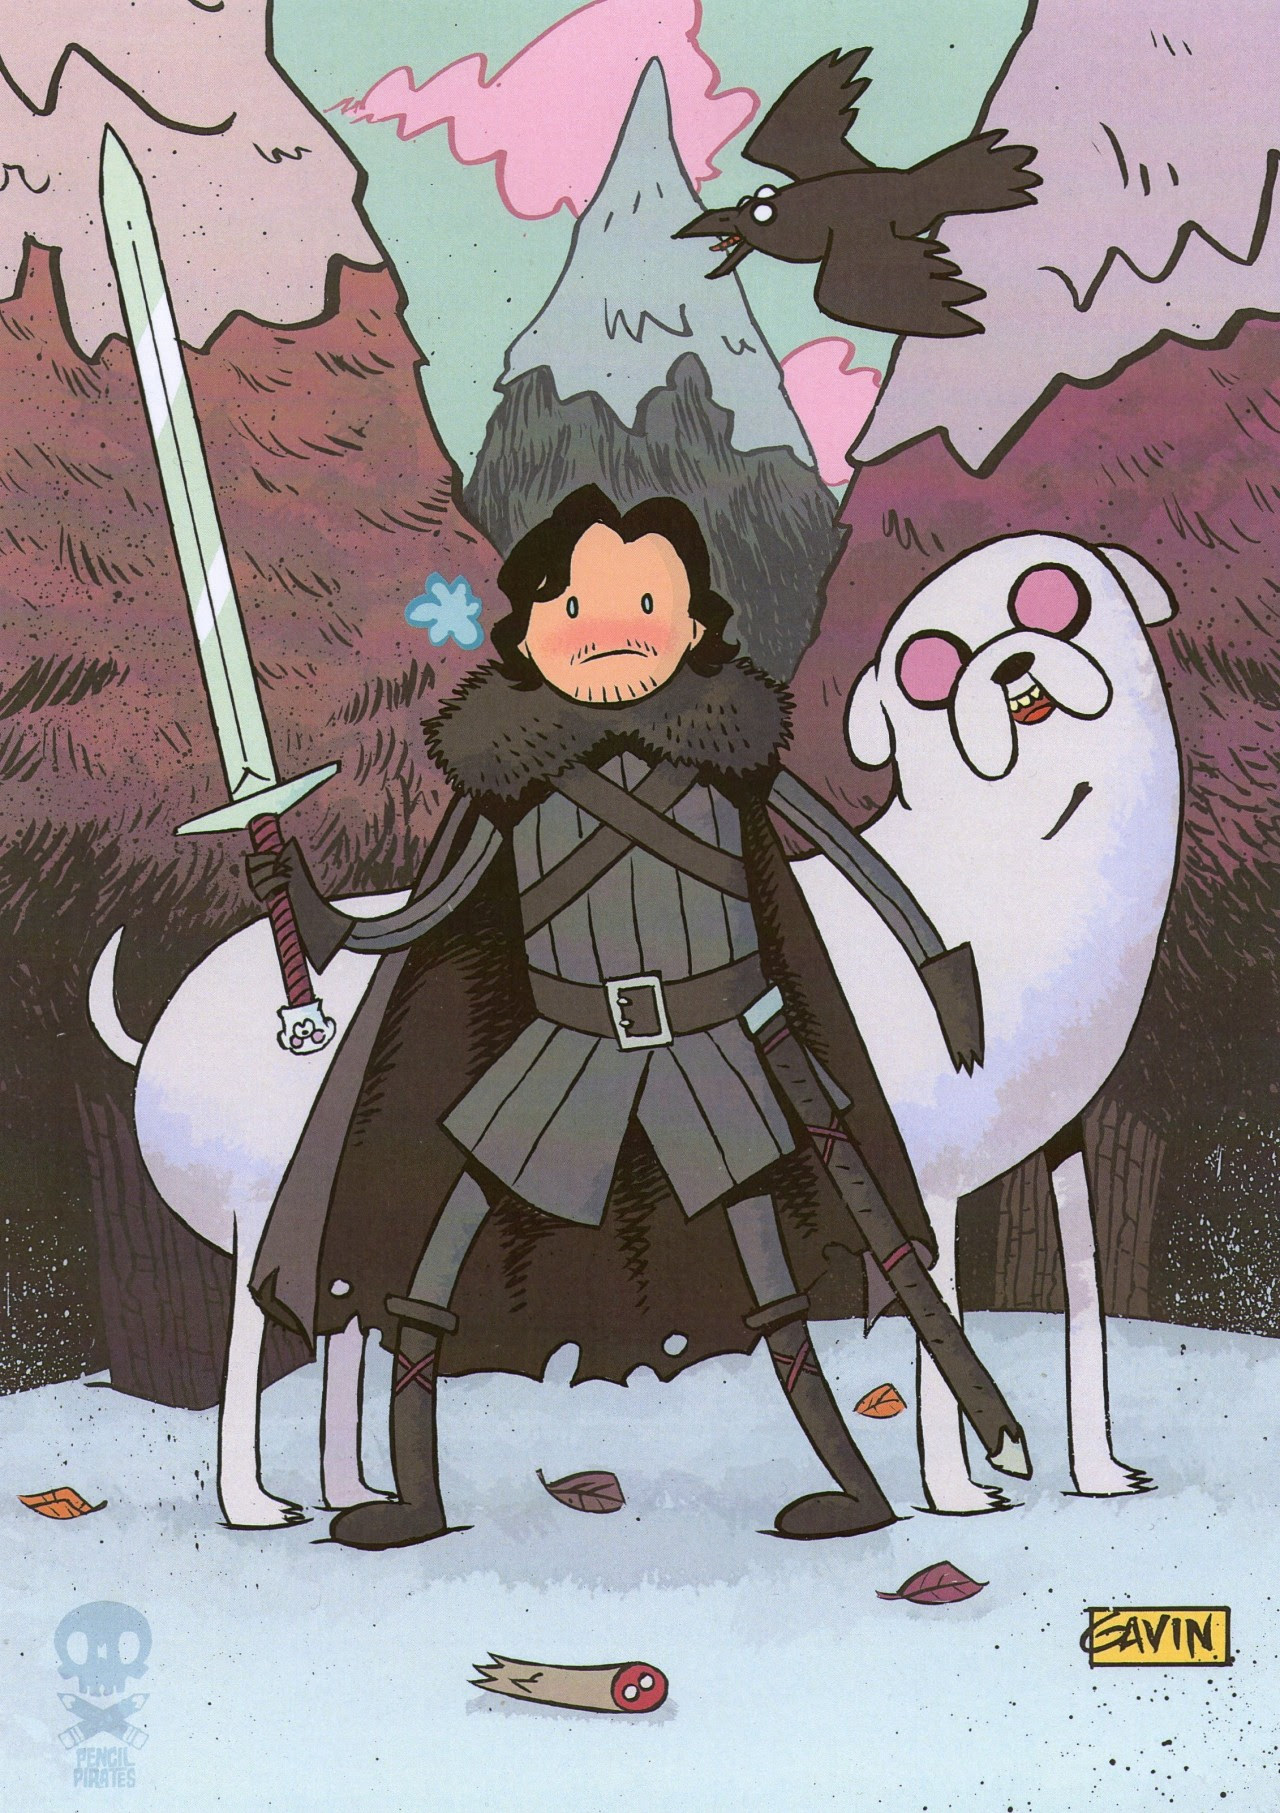 Awesome Game of Thrones / Adventure Time Artwork of Jon Snow and Ghost by TheNewsAtBen